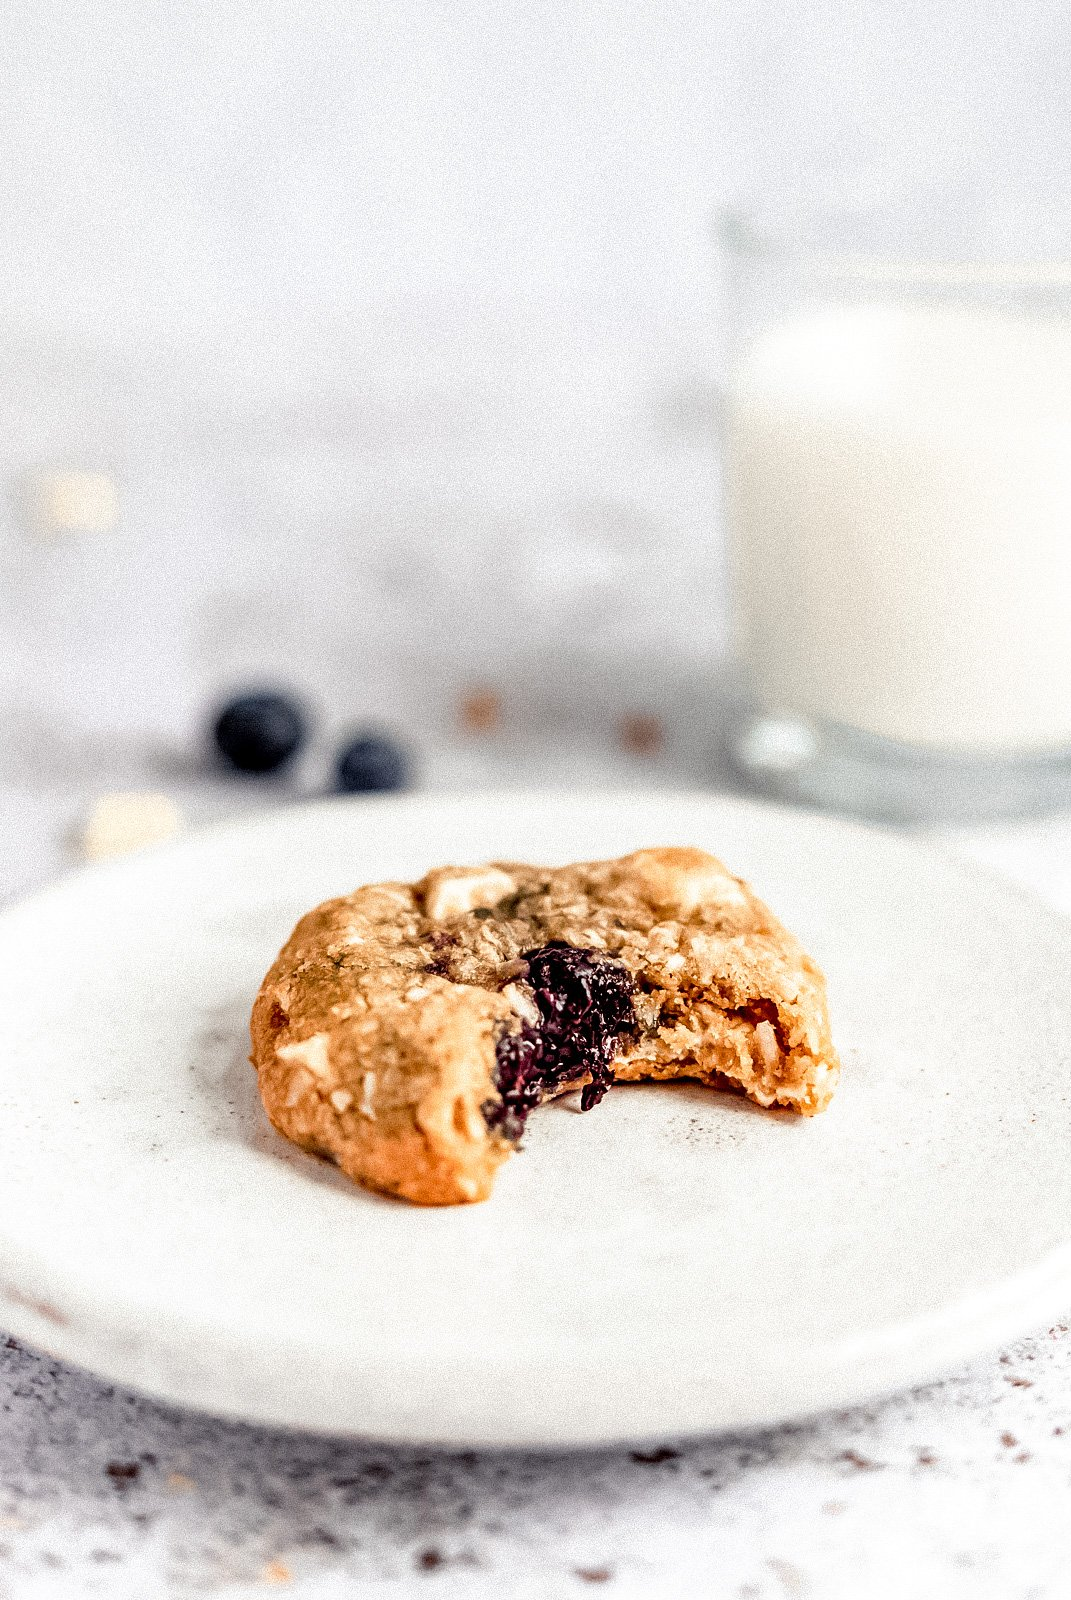 white chocolate blueberry coconut oatmeal cookie with a bite taken out